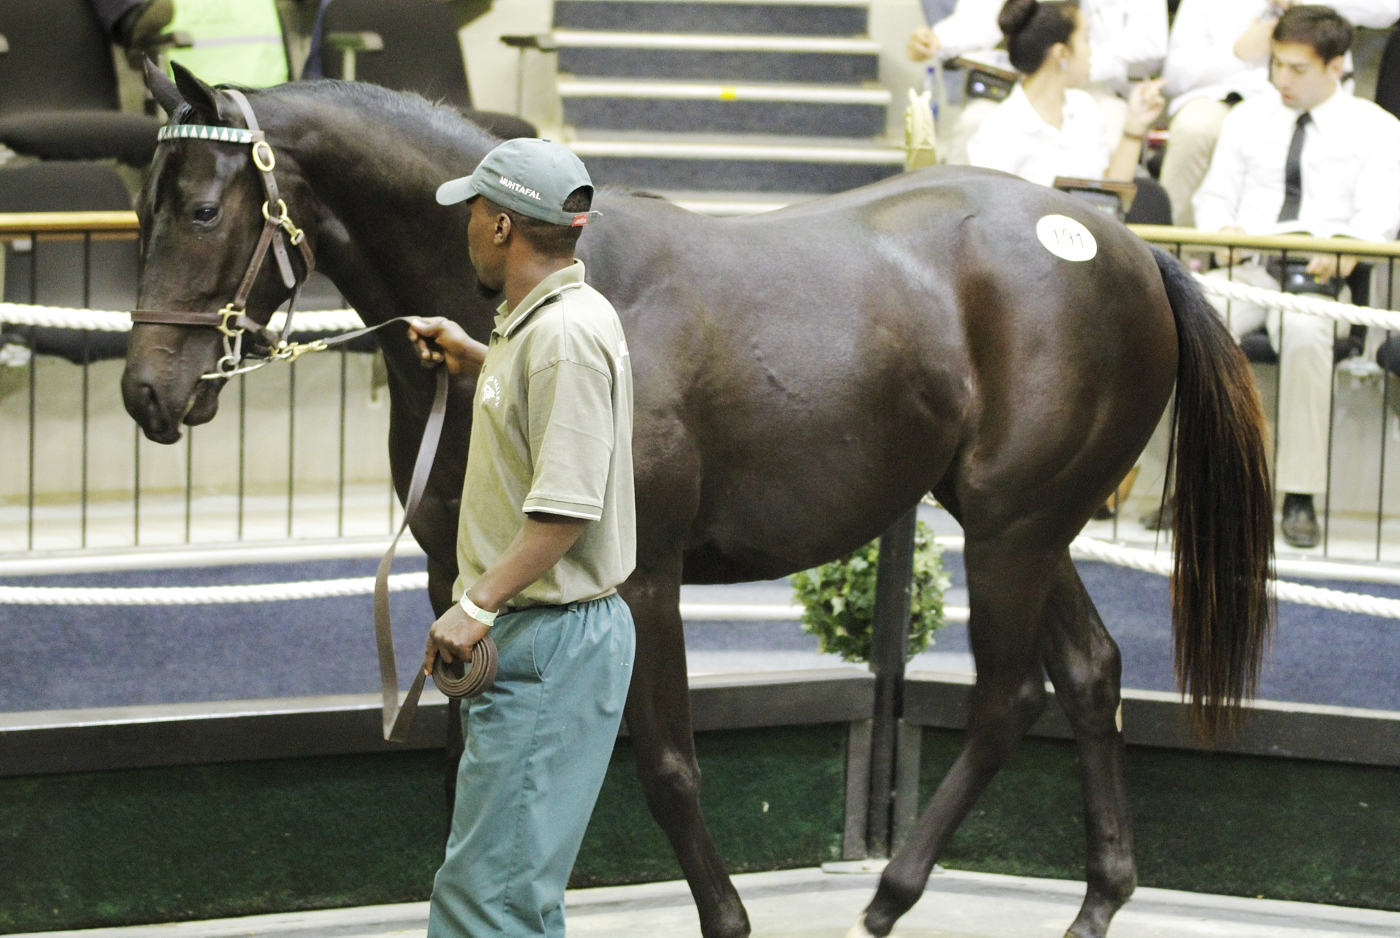 Swell Time pictured in the National Yearling Sales ring where she sold for R125 000. Image: Candiese Marnewick